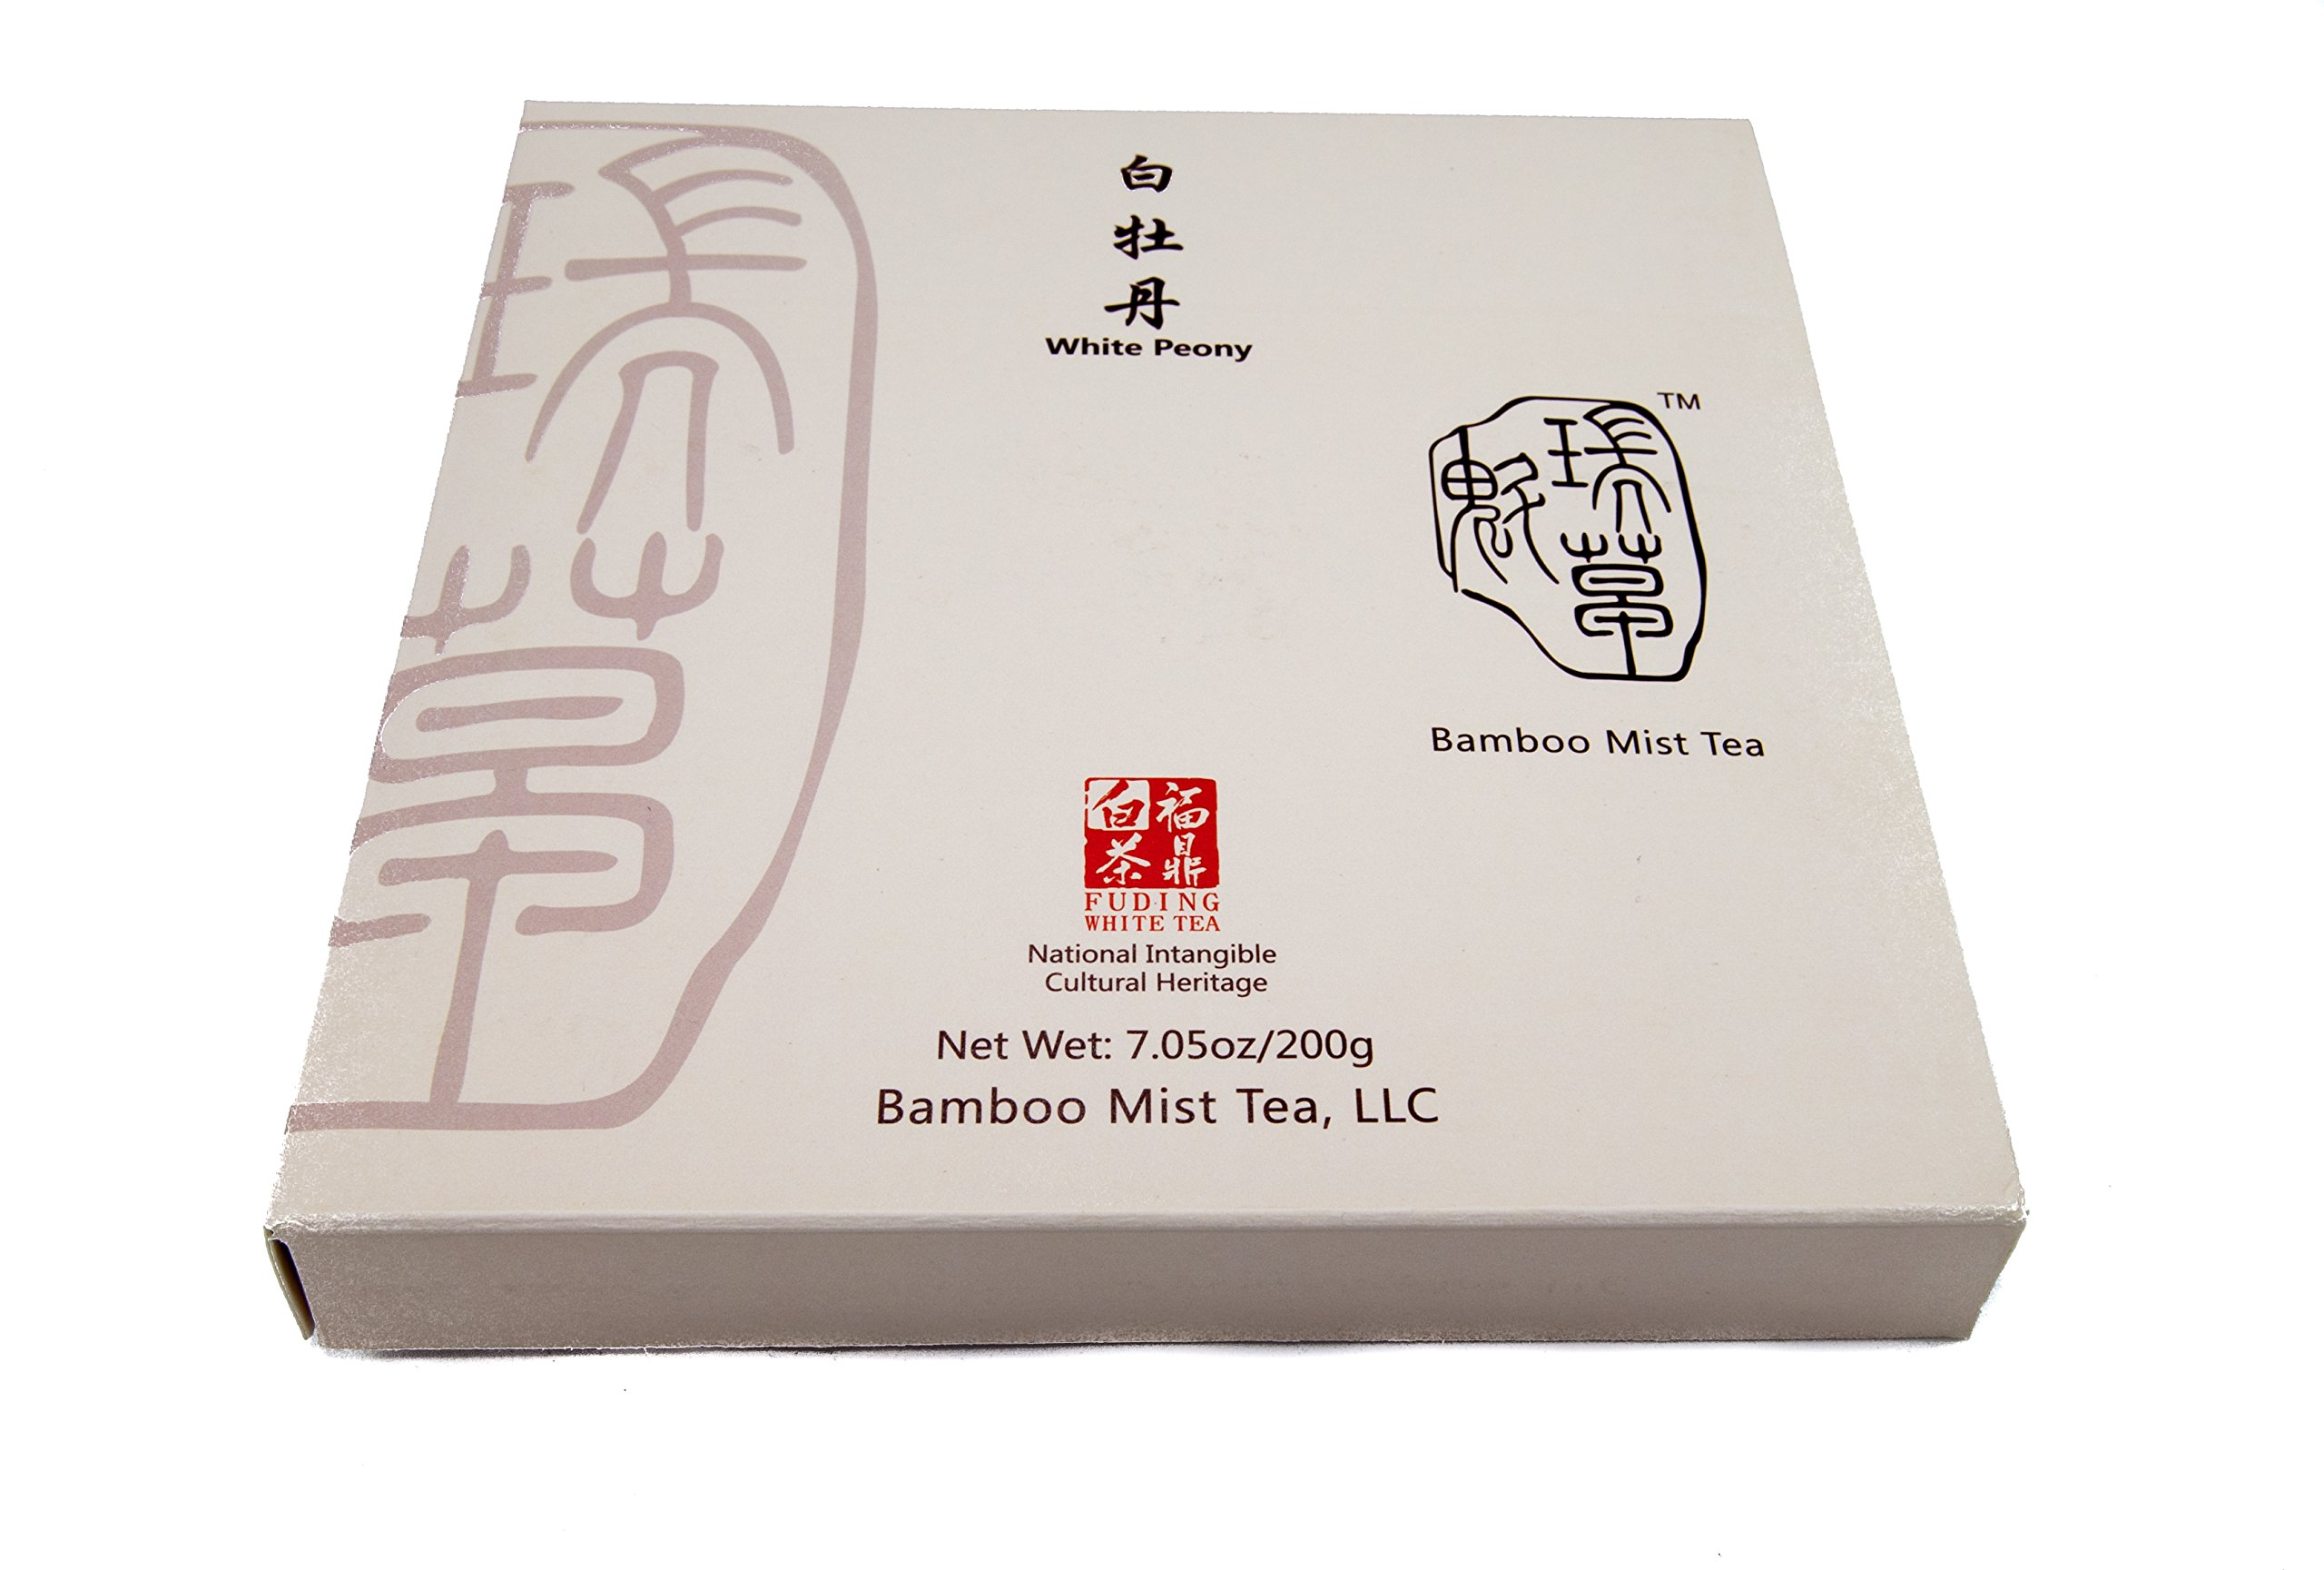 Rare, Aged 2013 White Tea - Tea Cake - Naturally & Ethically Grown - Picked Peony Style by Boutique Grower in High Mountains of Fujian, China - (Bai Mu Dan) - Exclusive for Bamboo Mist Tea